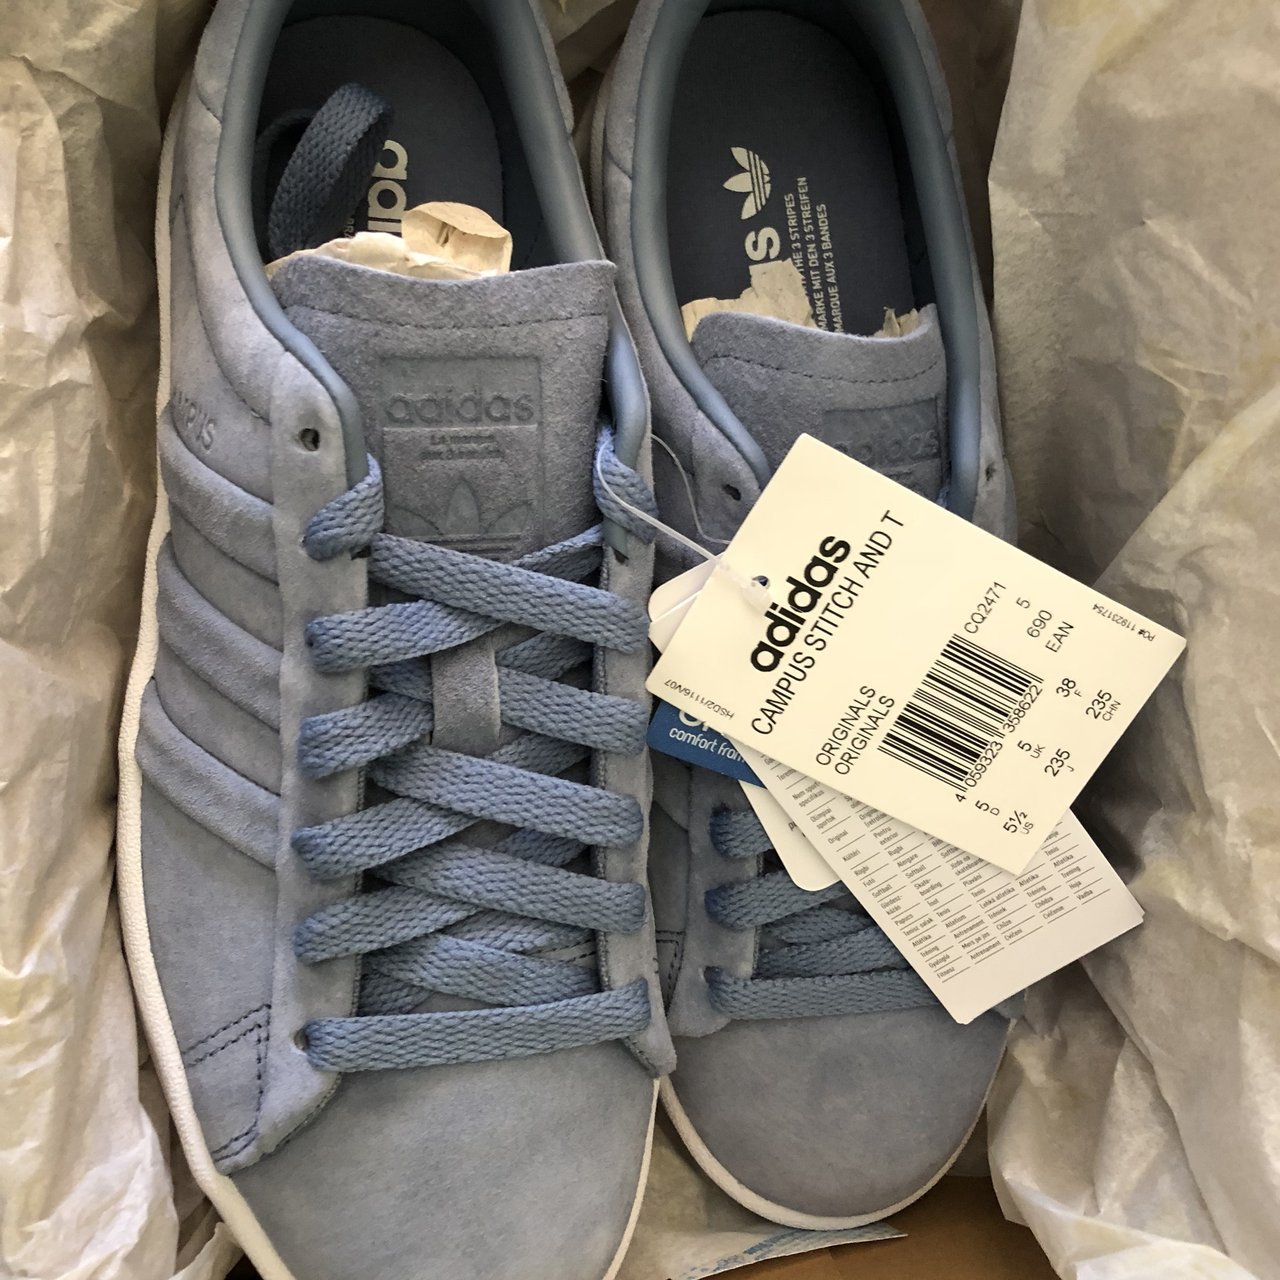 Ladies designer trainers 100% genuine New boxed with tags 5 - Depop e46a07be3